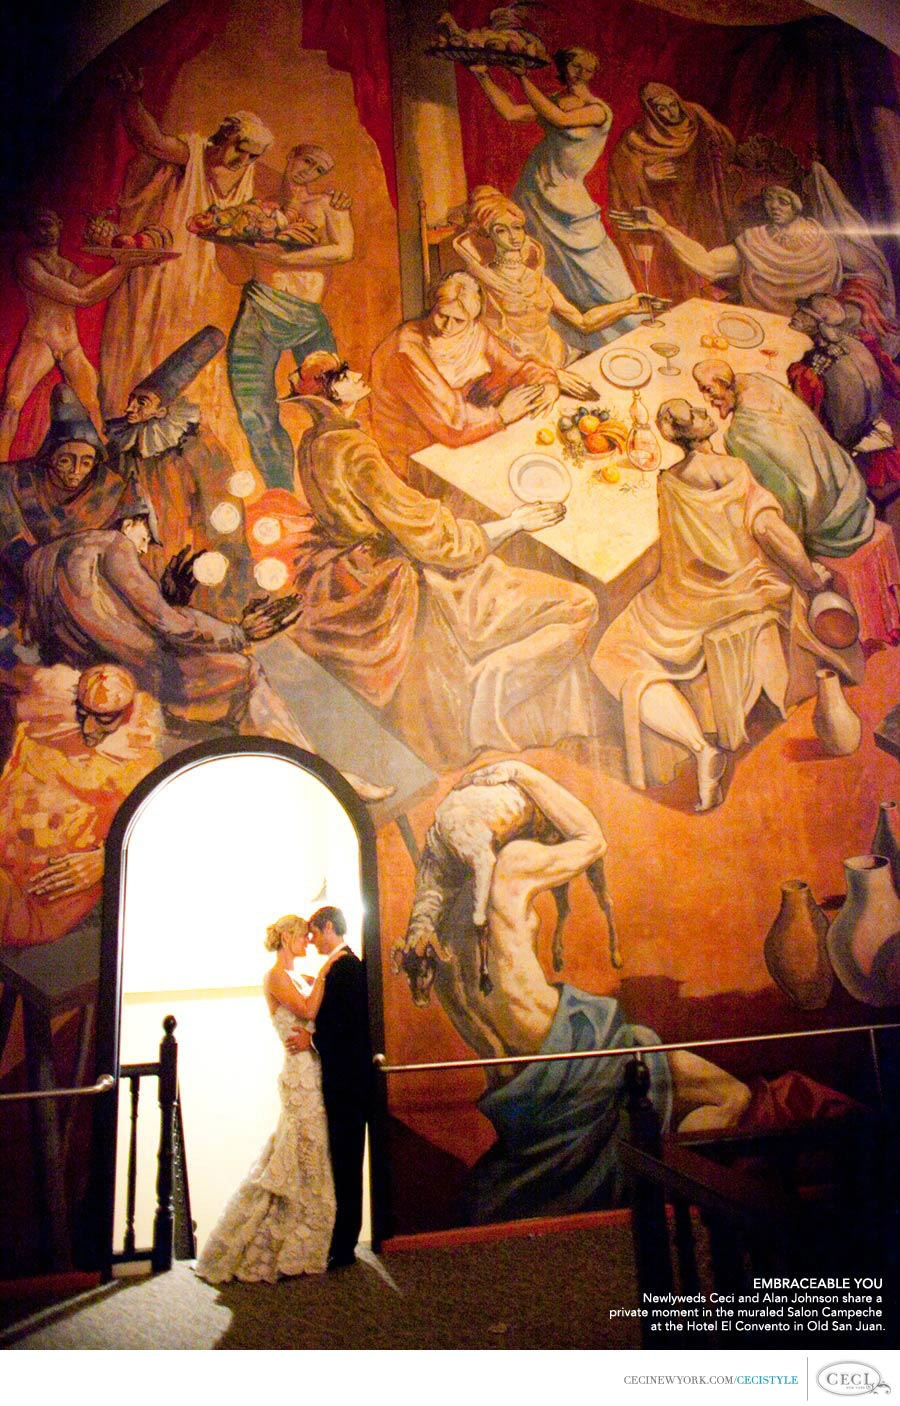 Embraceable You - Newlyweds Ceci and Alan Johnson share a private moment in the muraled Salon Campeche at the Hotel El Convento in Old San Juan.